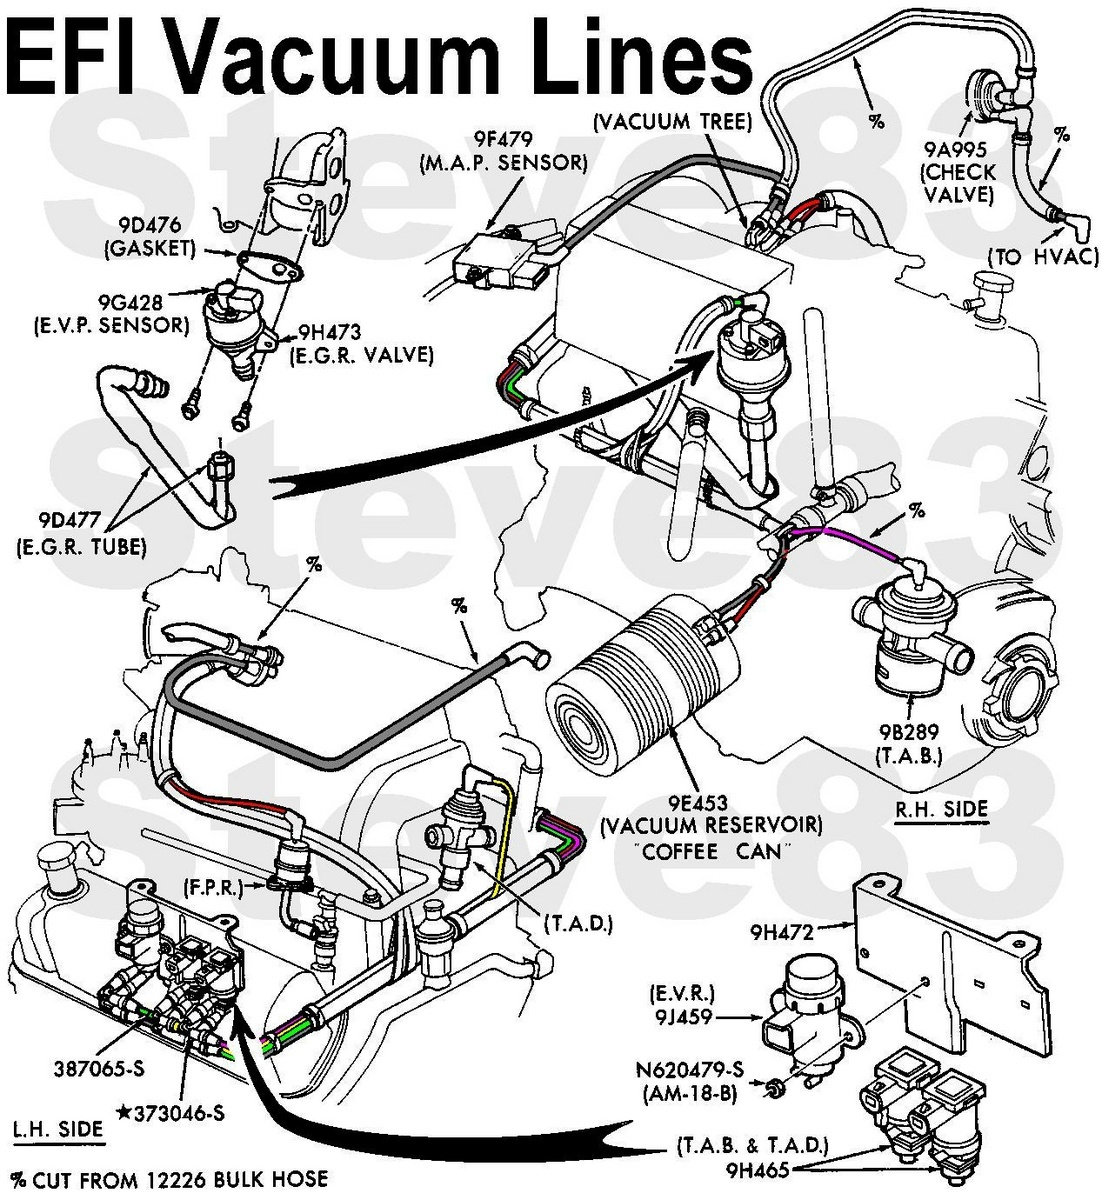 1999 Toyota Avalon Spark Plug Wire Diagram in addition 2006 Toyota Sienna Timing Marks additionally RepairGuideContent furthermore Nissan Frontier Oil Drain Plug Location in addition 4 3l Throttle Position Sensor Location. on 2006 toyota sienna engine diagram pcv valve